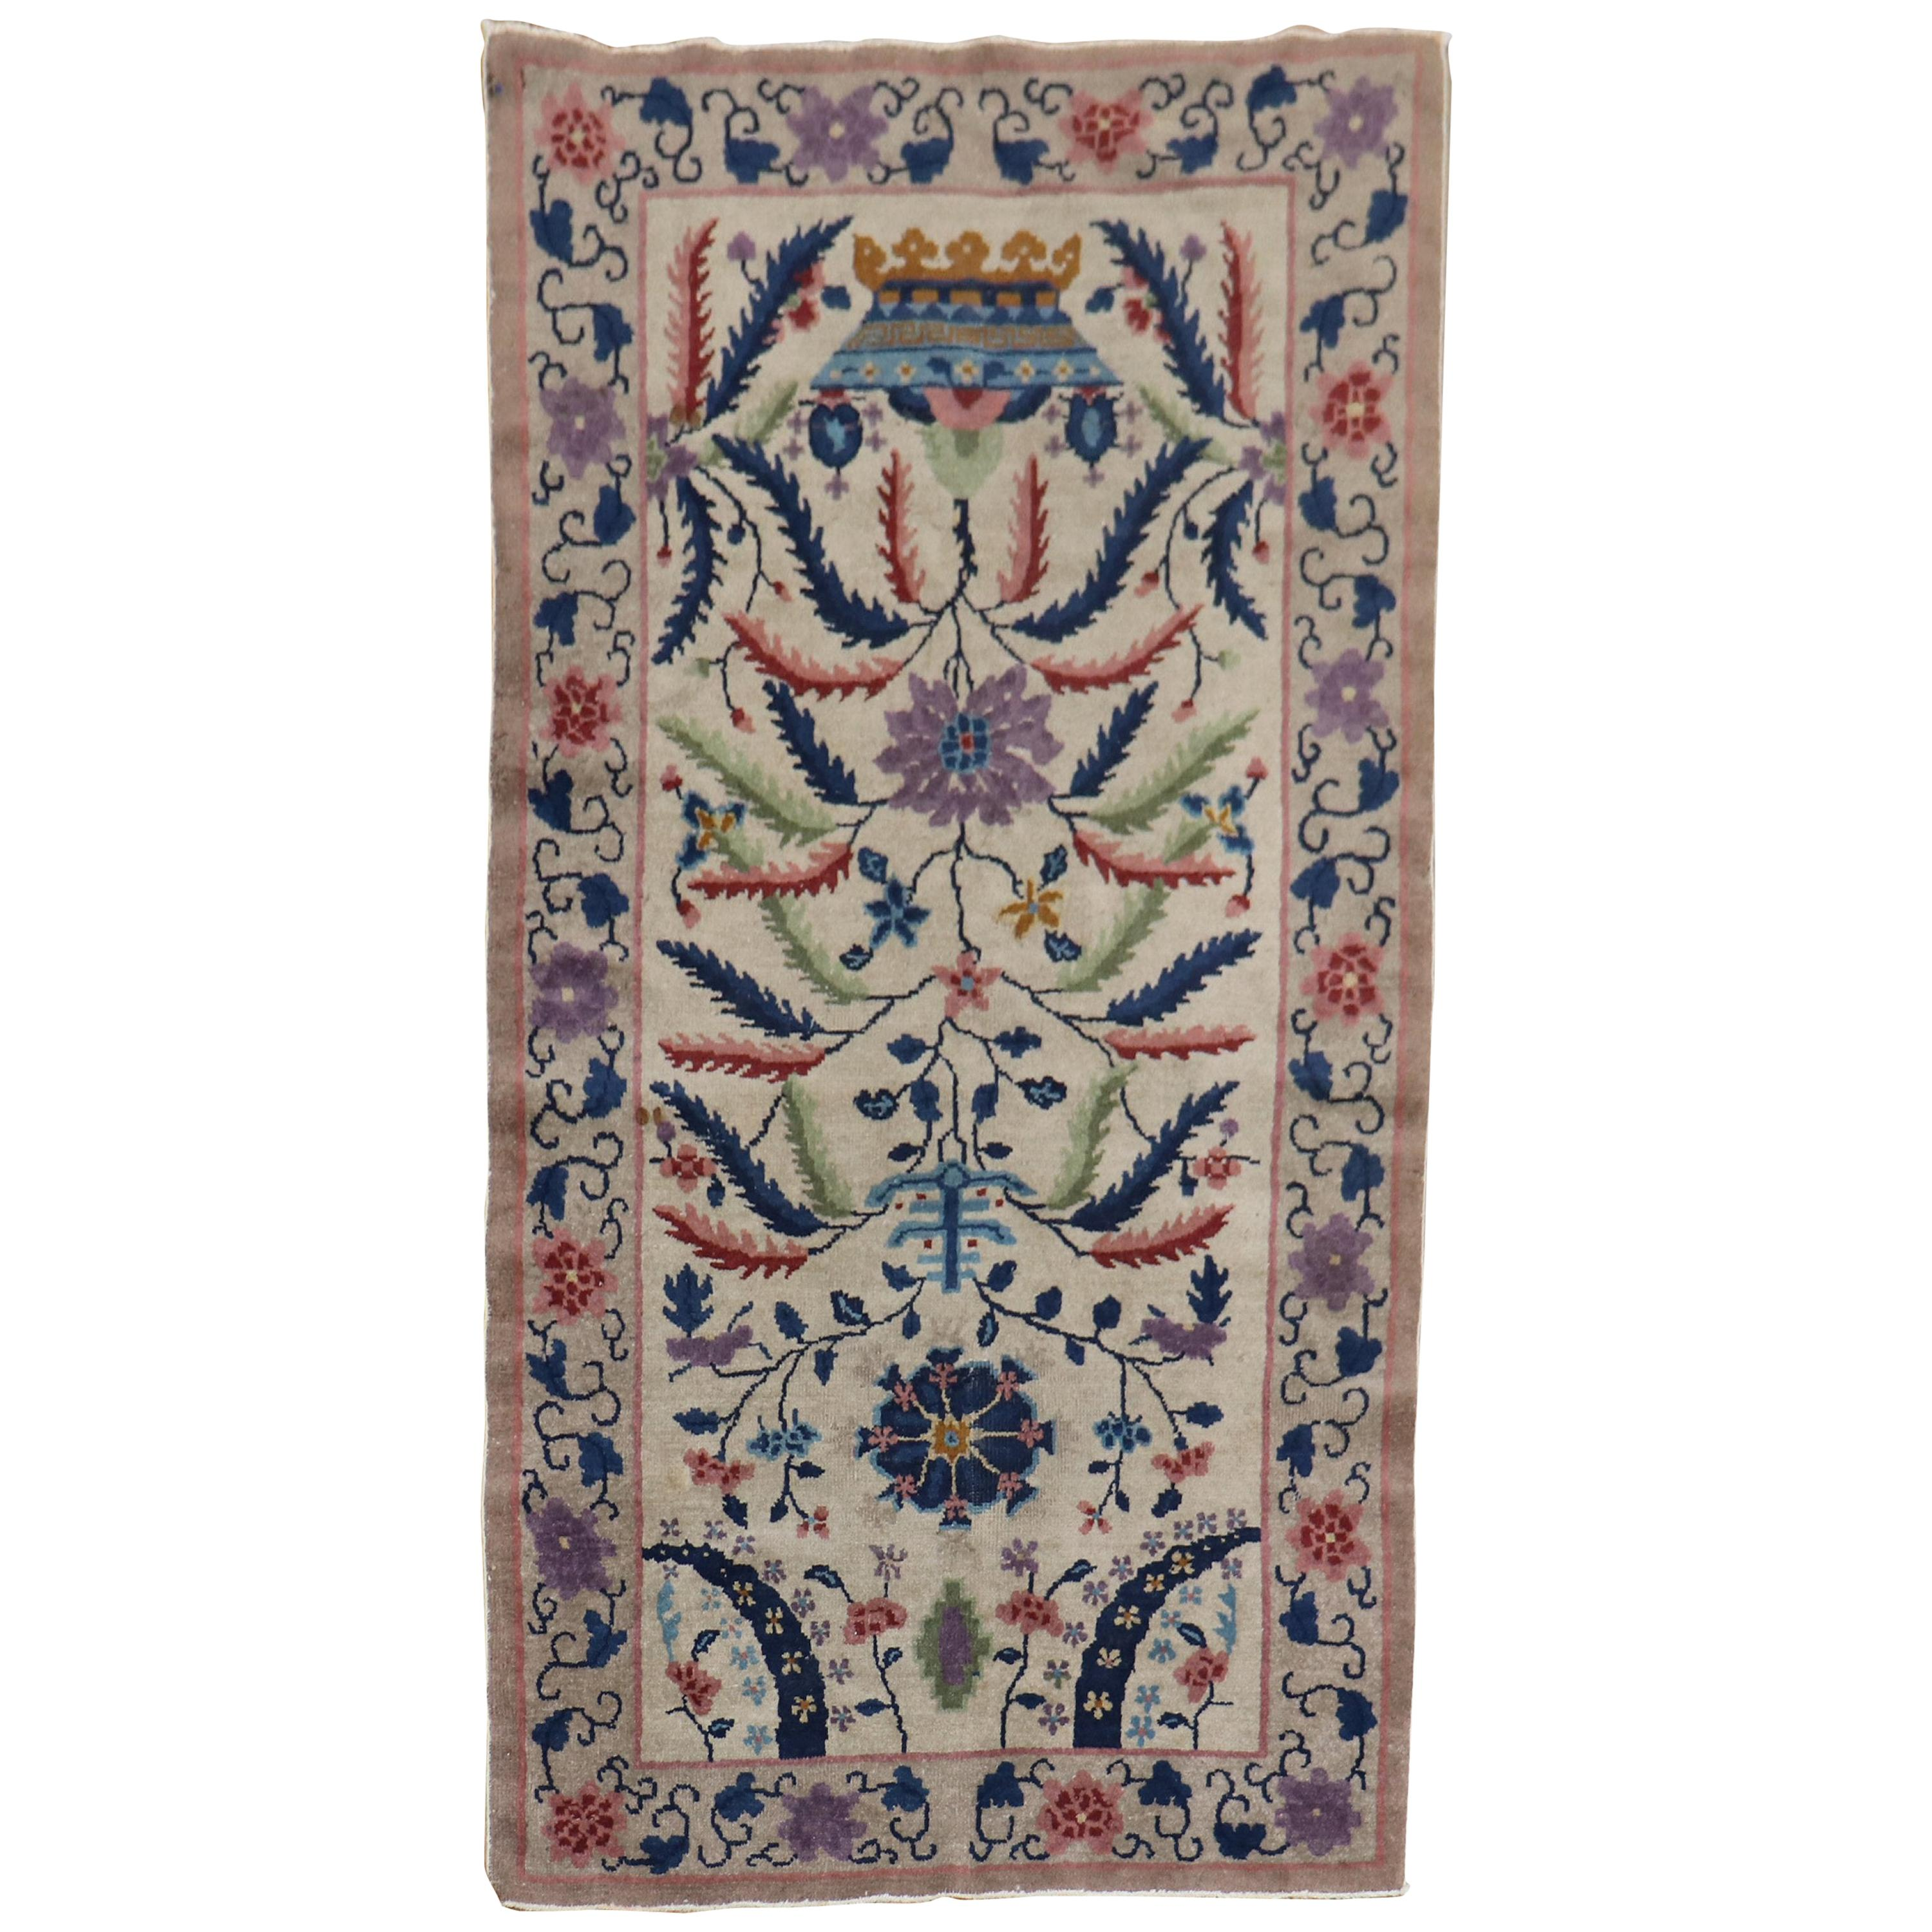 Eclectic Chinese Art Deco Scatter Rug